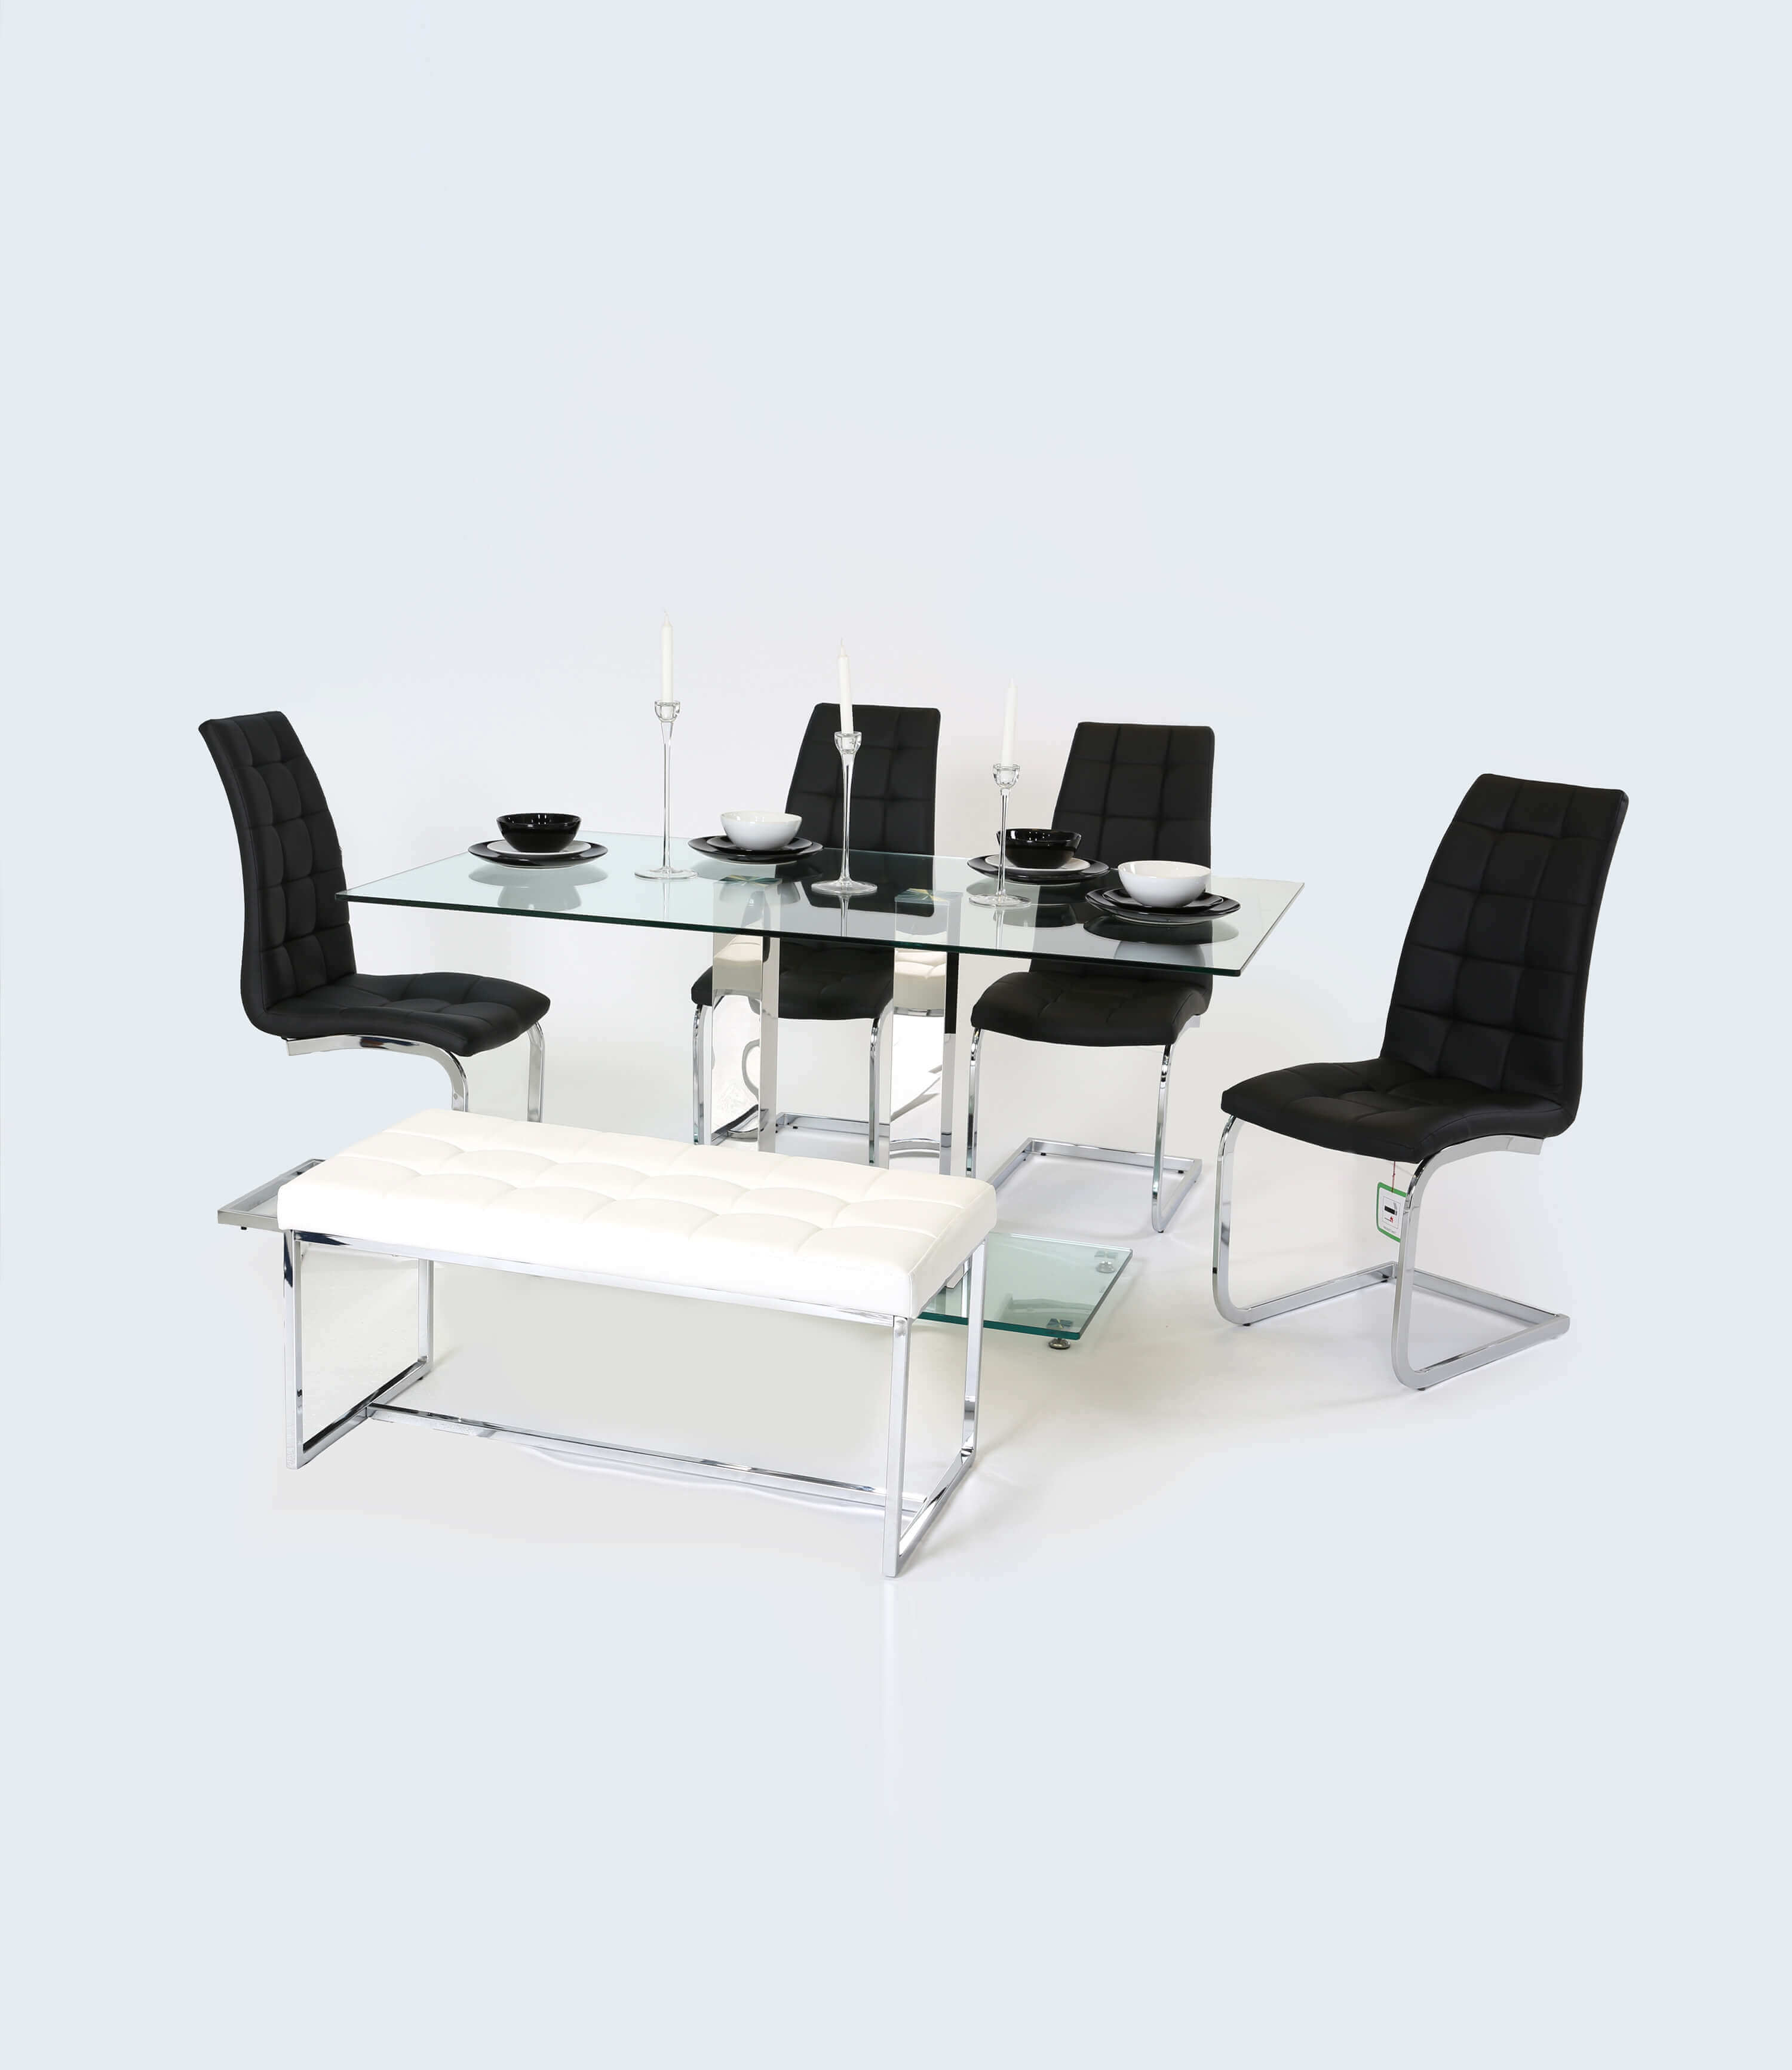 Holly Clear Glass Dining Table 160 CM Manchester  : HollyClearGlassTopandChromeModernDiningTable160CM from www.manchesterfurnituresupplies.co.uk size 3000 x 3466 jpeg 149kB